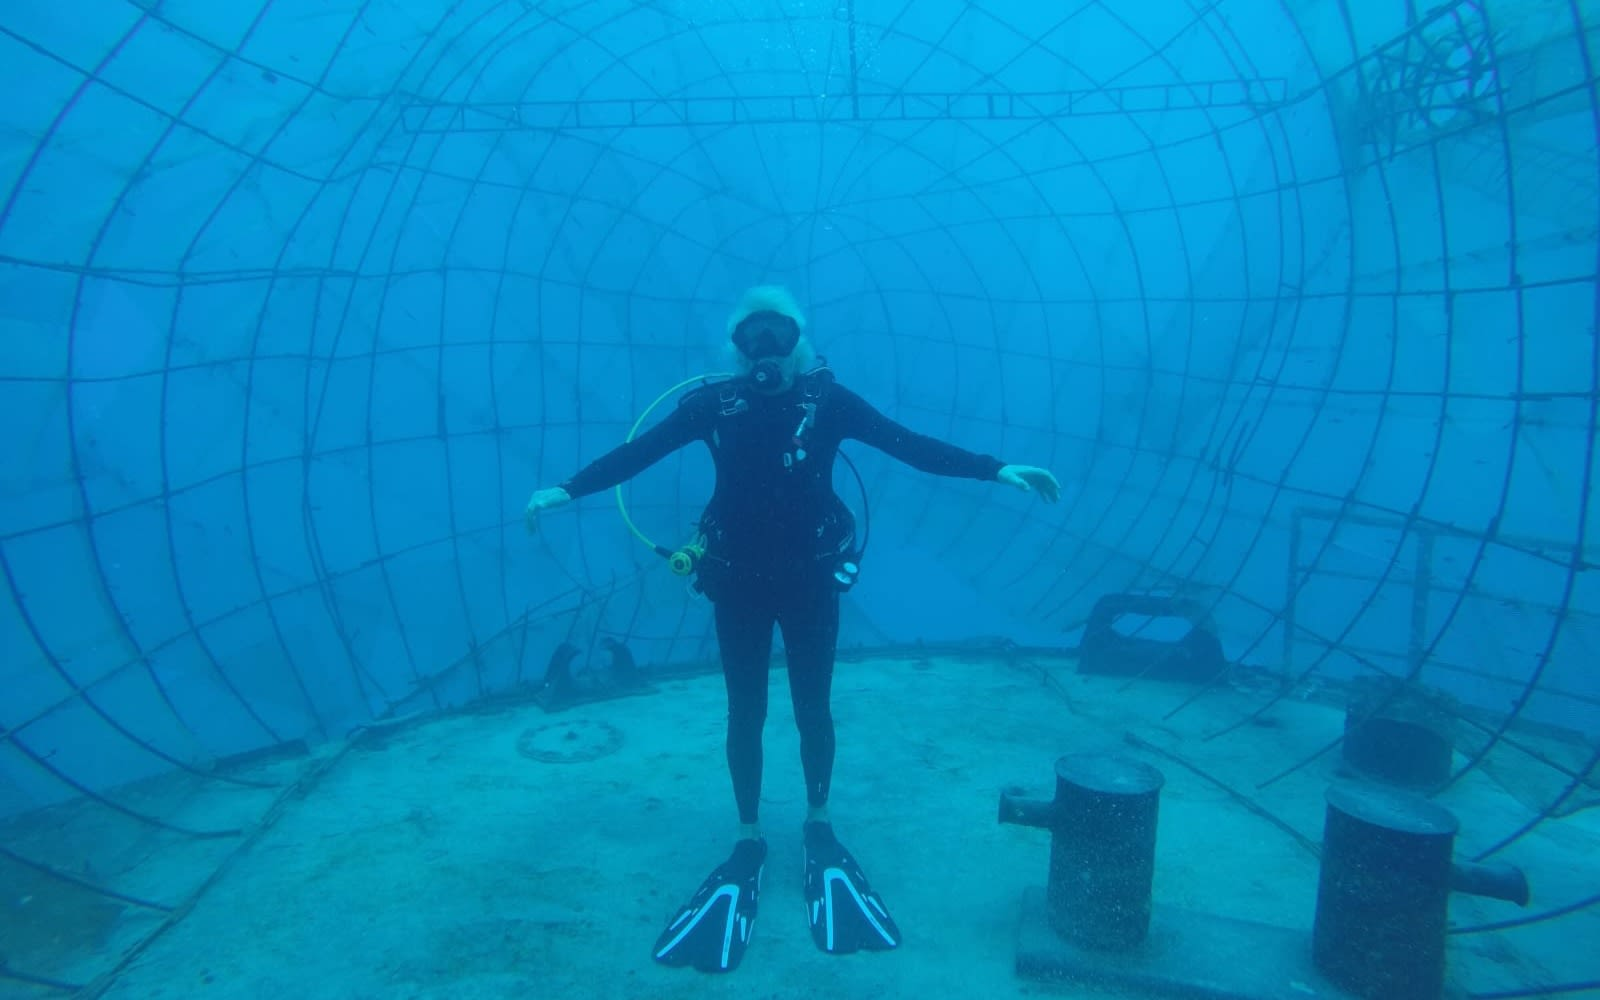 Richard Branson scuba diving in large cage